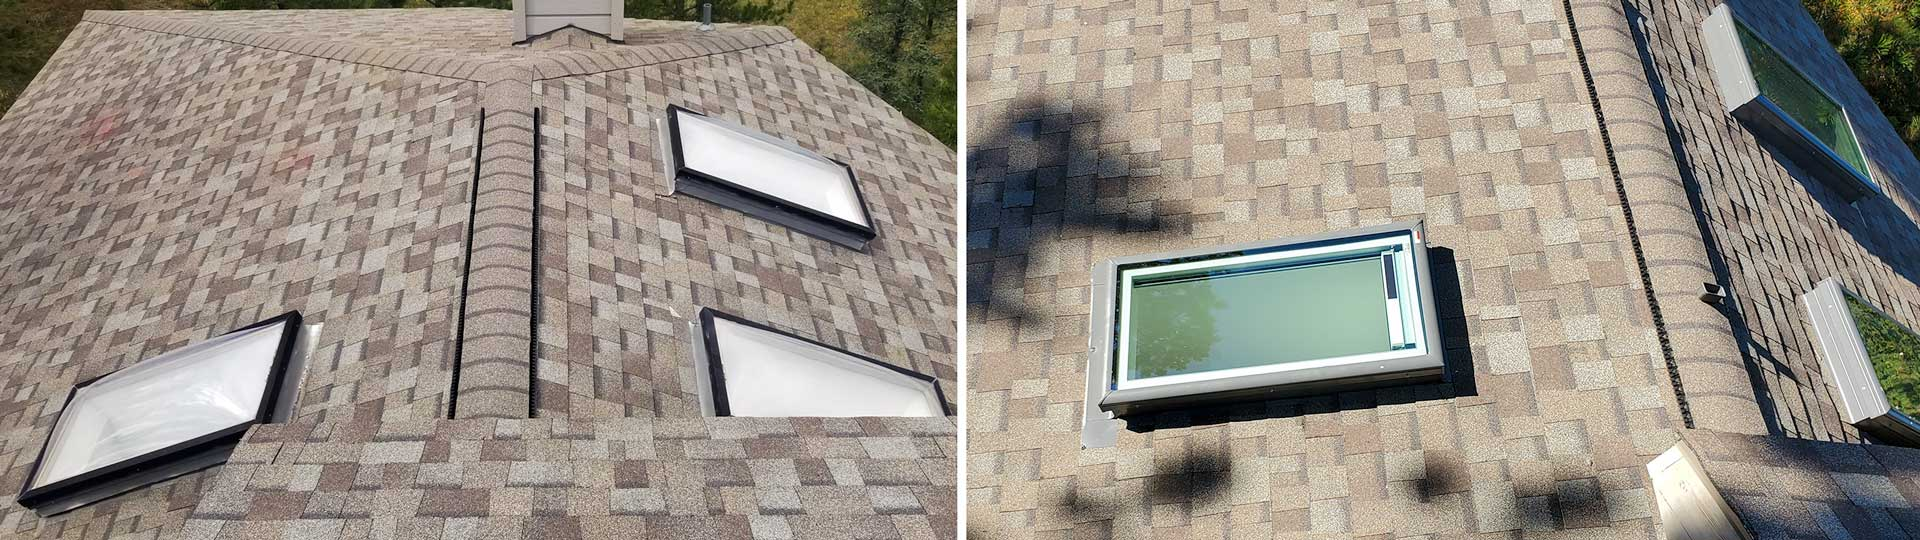 skylight replacement Evergreen 29888-134120